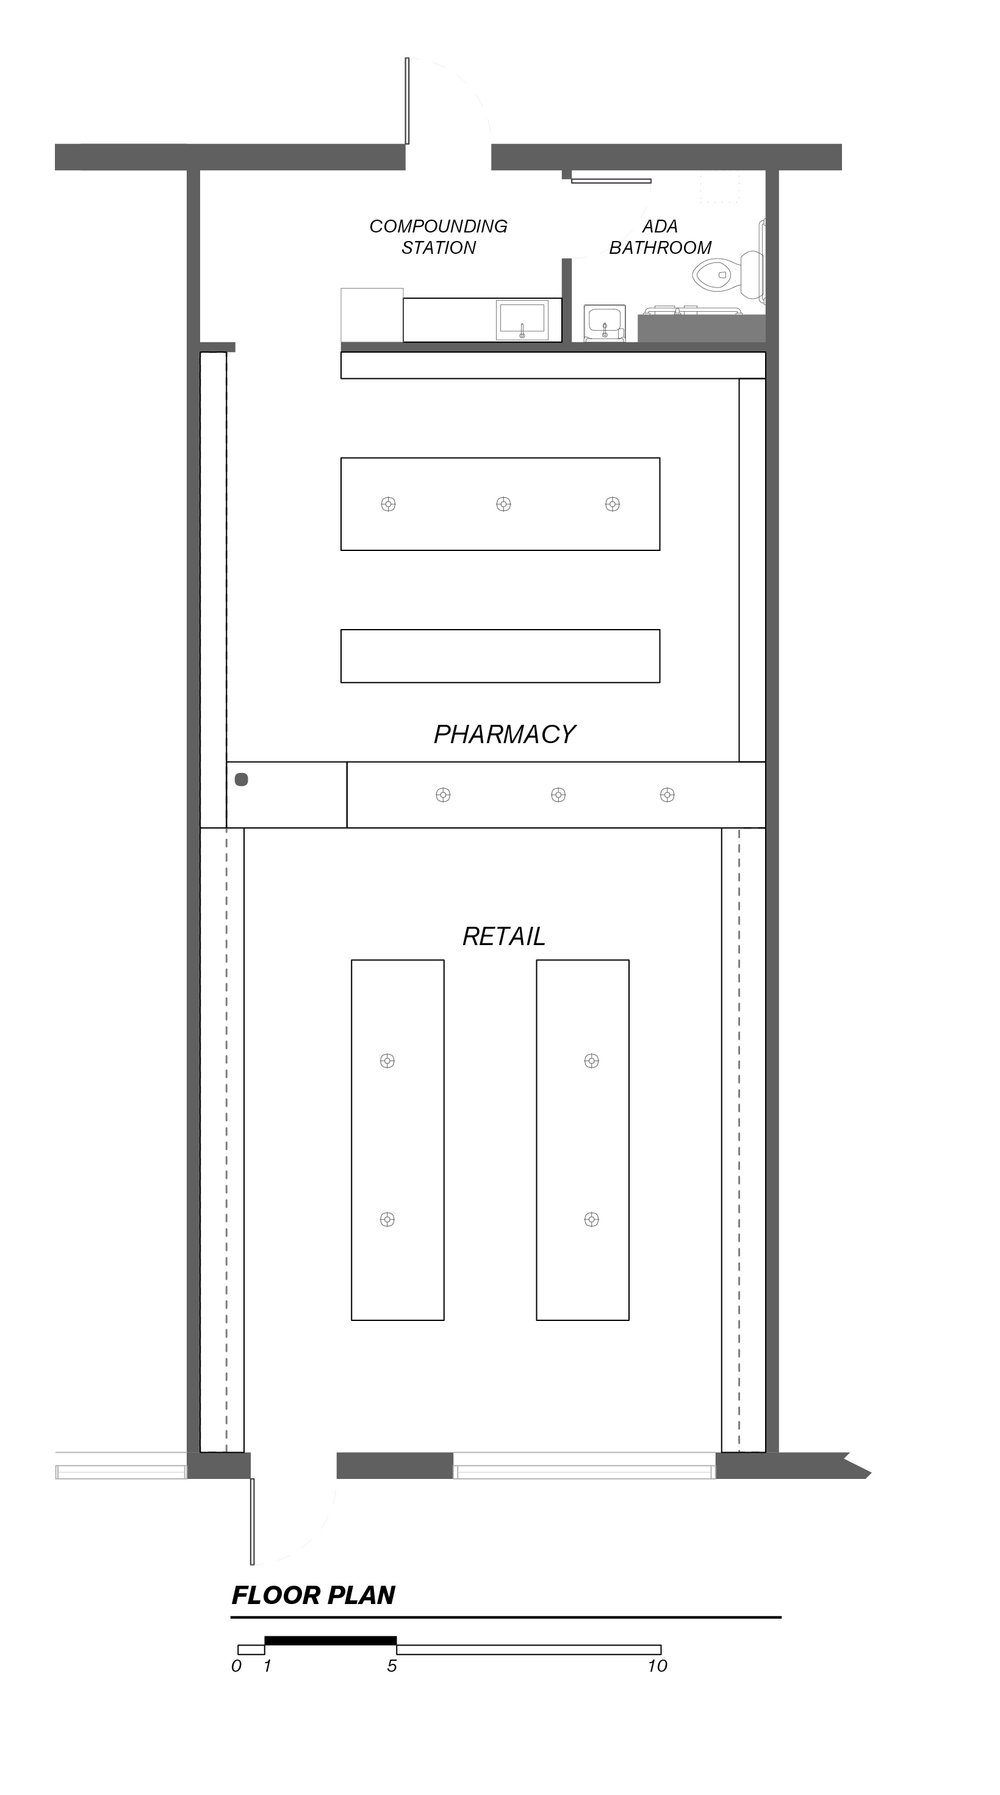 20181025_A2Pharmacy_Design Drawings [Converted]-01.jpg